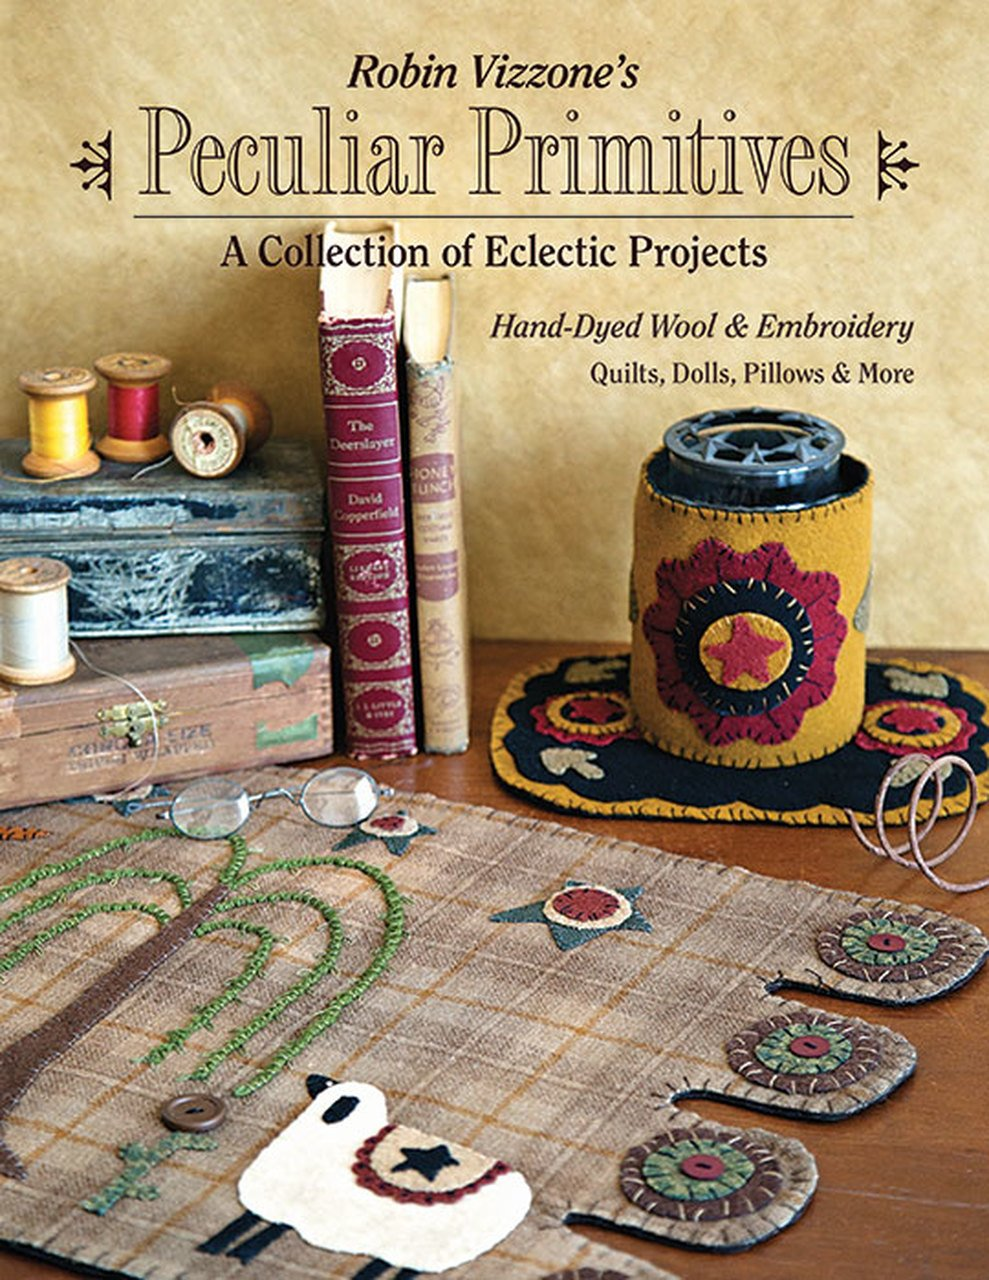 11228 Robin Vizzone's Peculiar Primitives?A Collection of Eclectic Projects